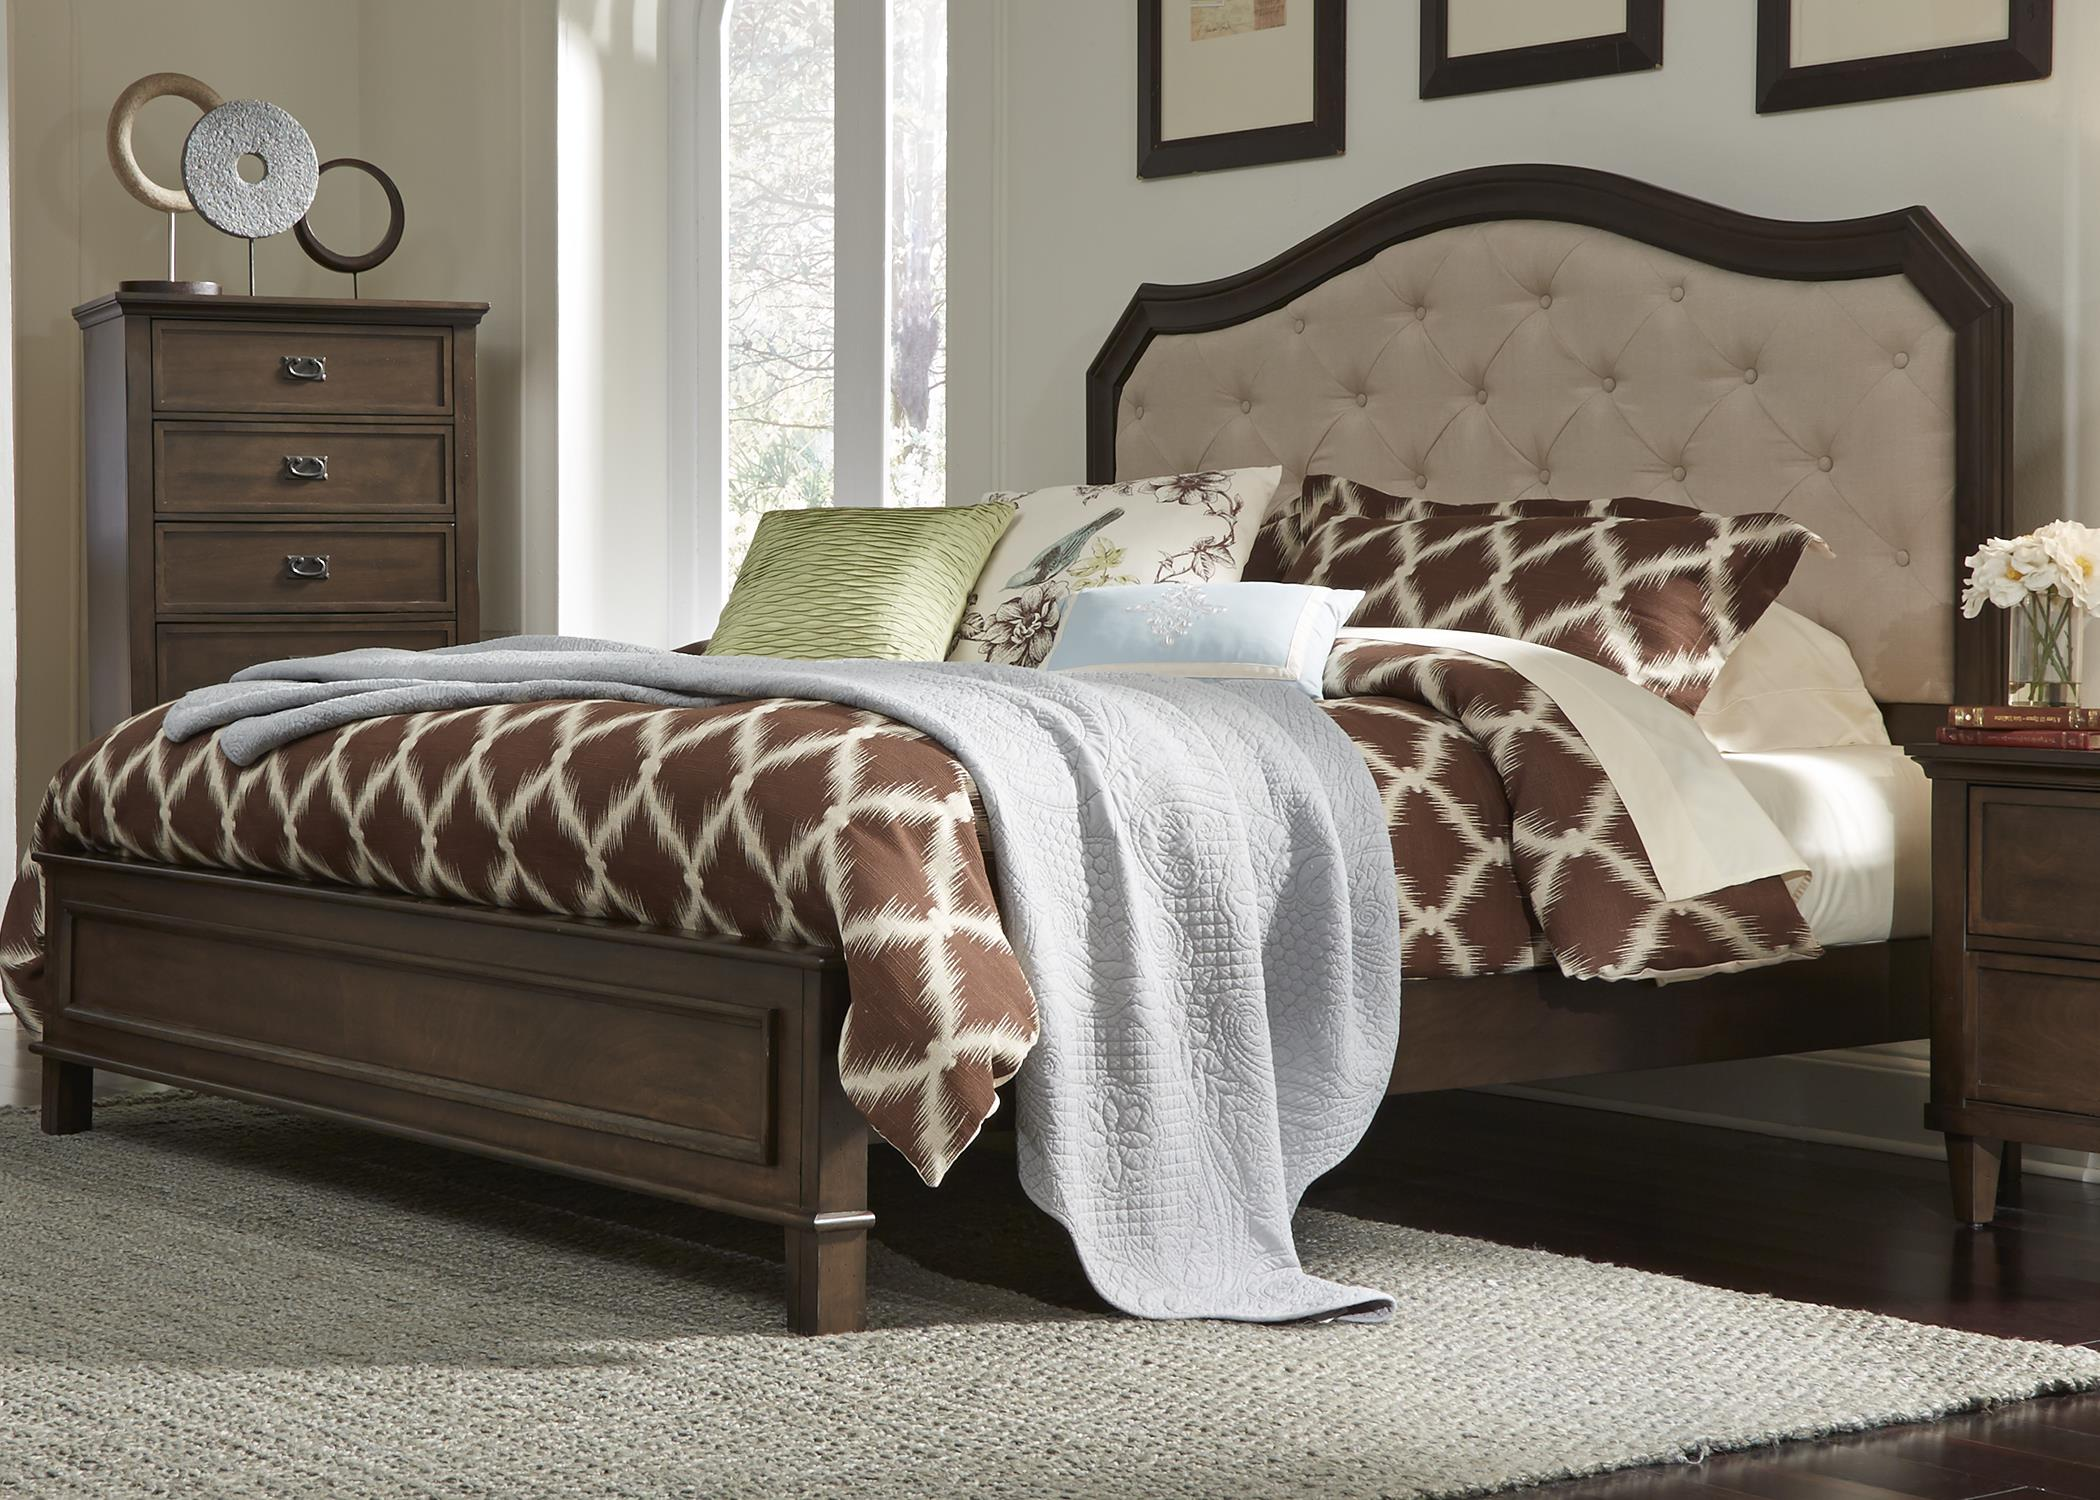 Liberty Furniture Berkley Heights Queen Panel Bed - Item Number: 102-BR-QPB